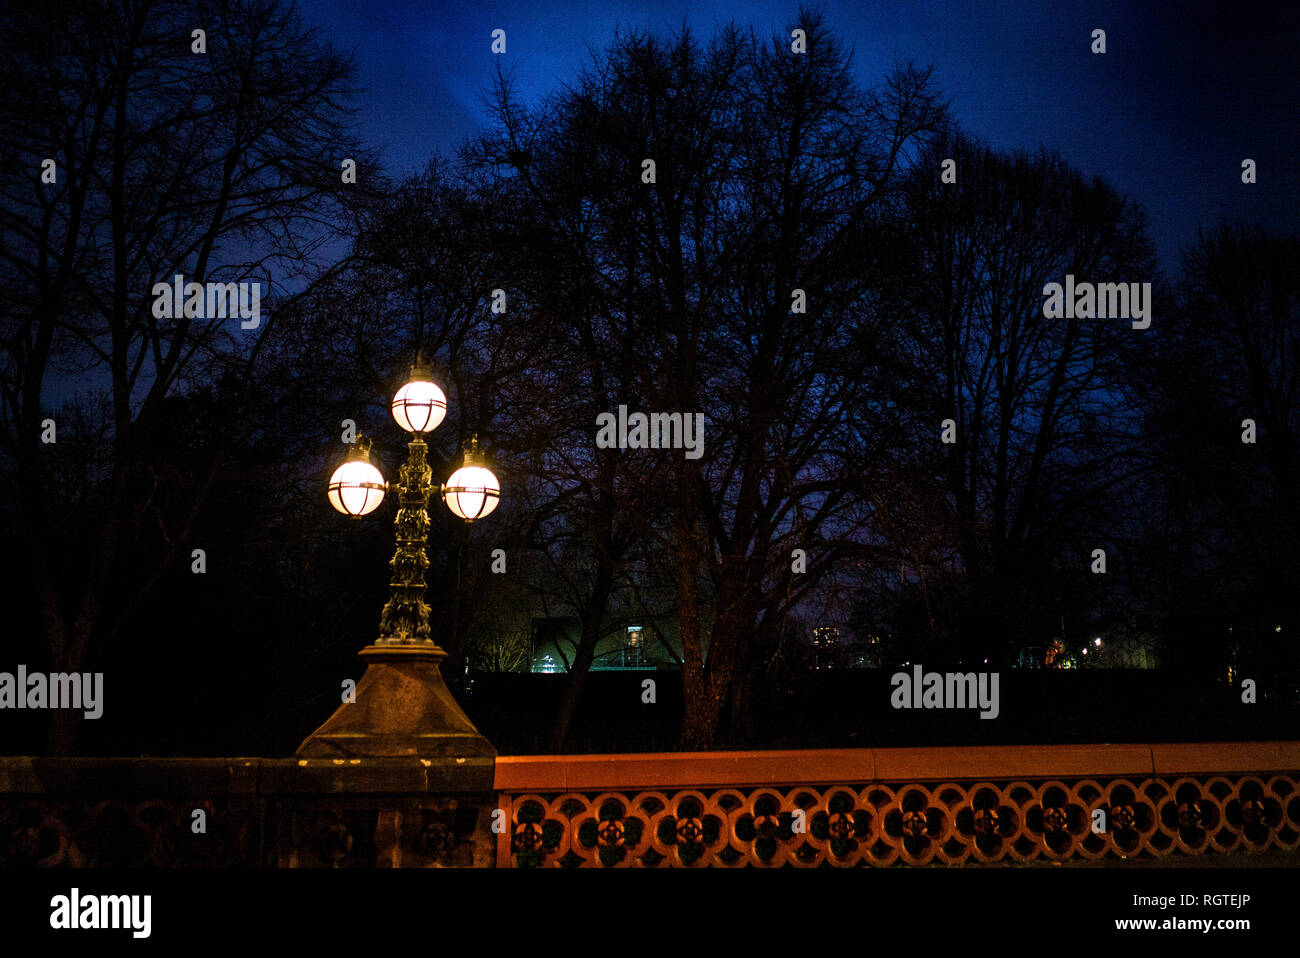 Gloucester Gate Bridge elaborate bronze candelabra shot at night Gloucester gate victorian street lamps regents park royal parks camden - Stock Image